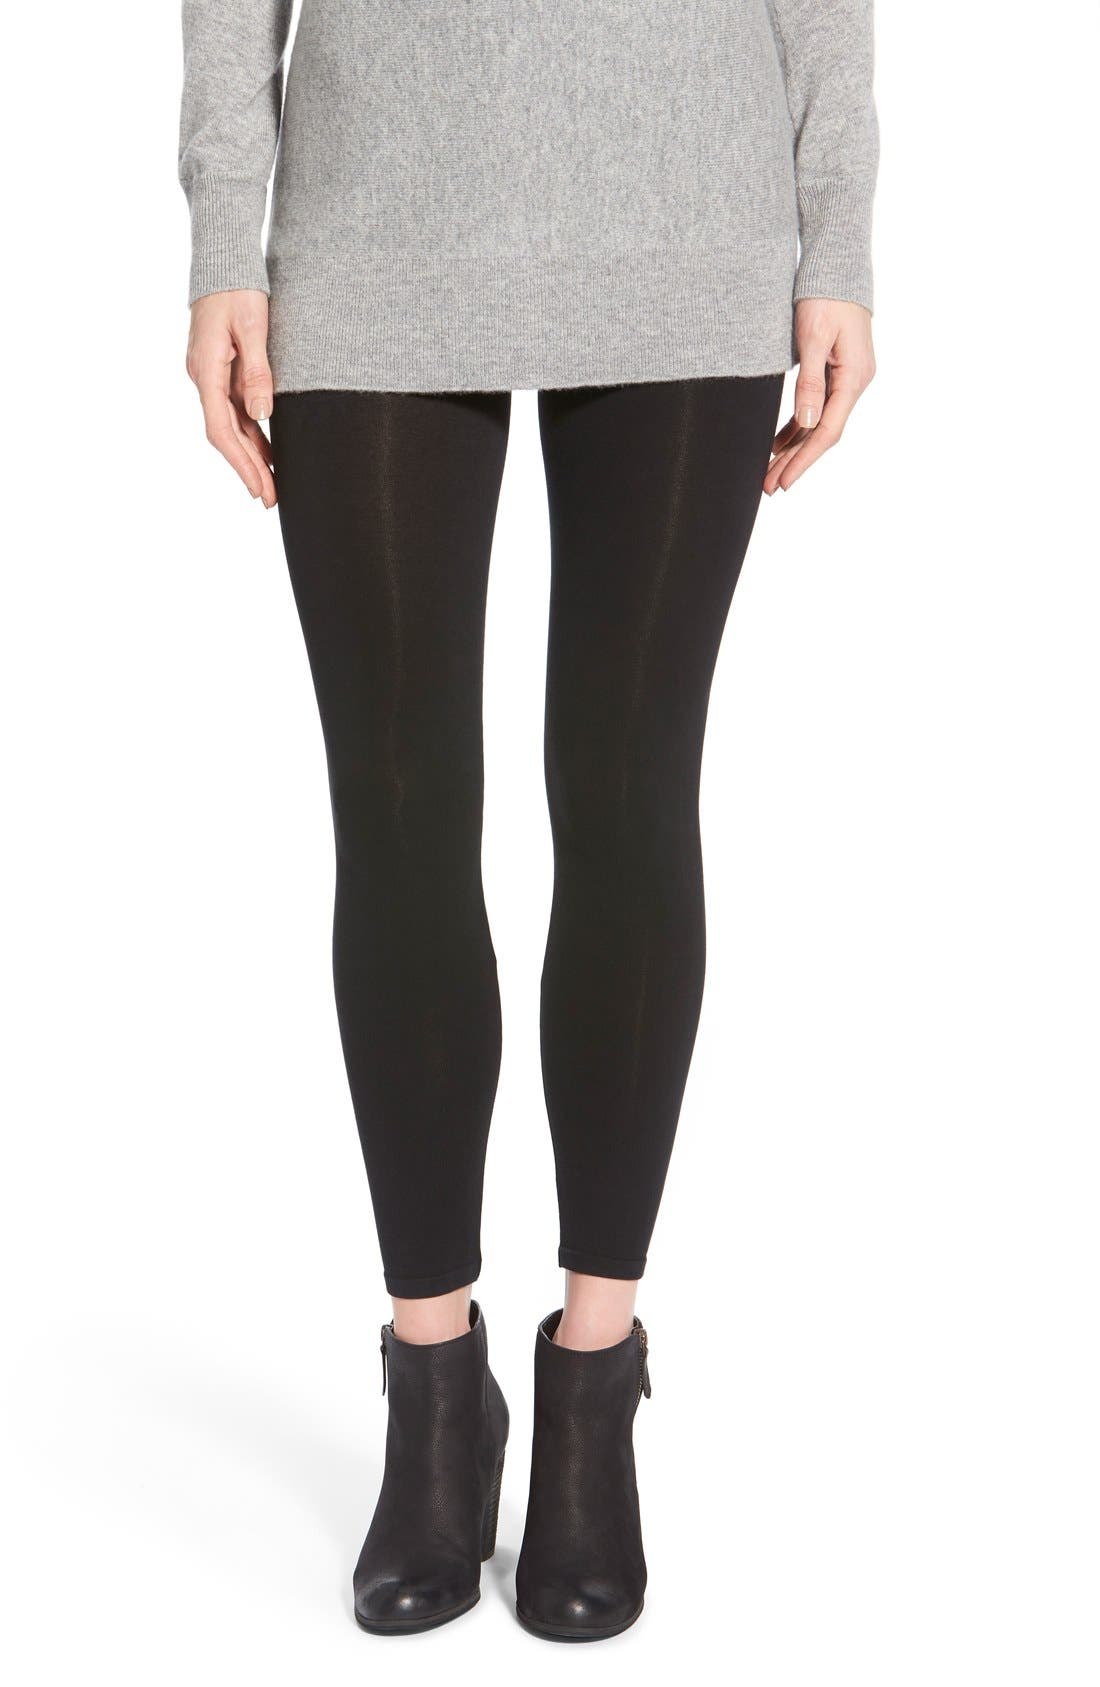 Alternate Image 1 Selected - SPANX® 'Look-at-Me' Shaping Leggings